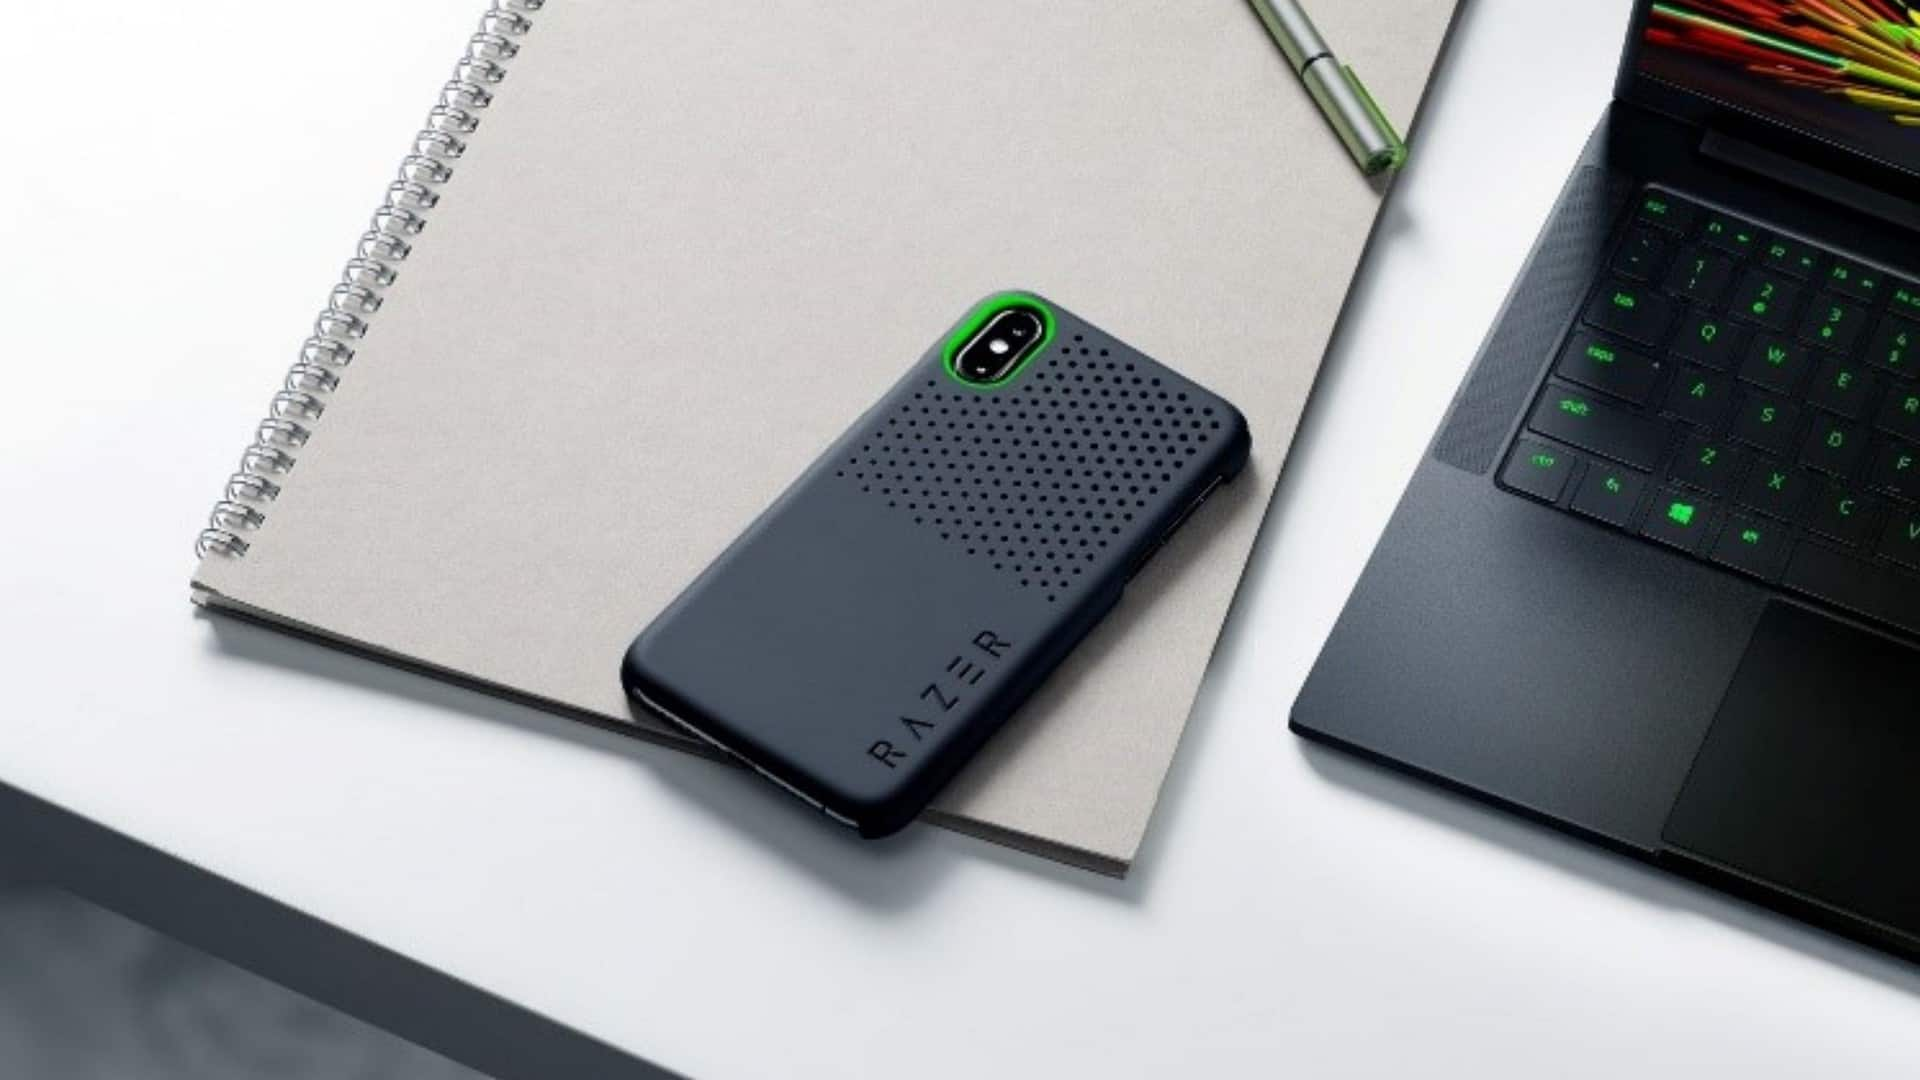 iPhone Cases Don't Get Any Cooler Than The Razer Arctech